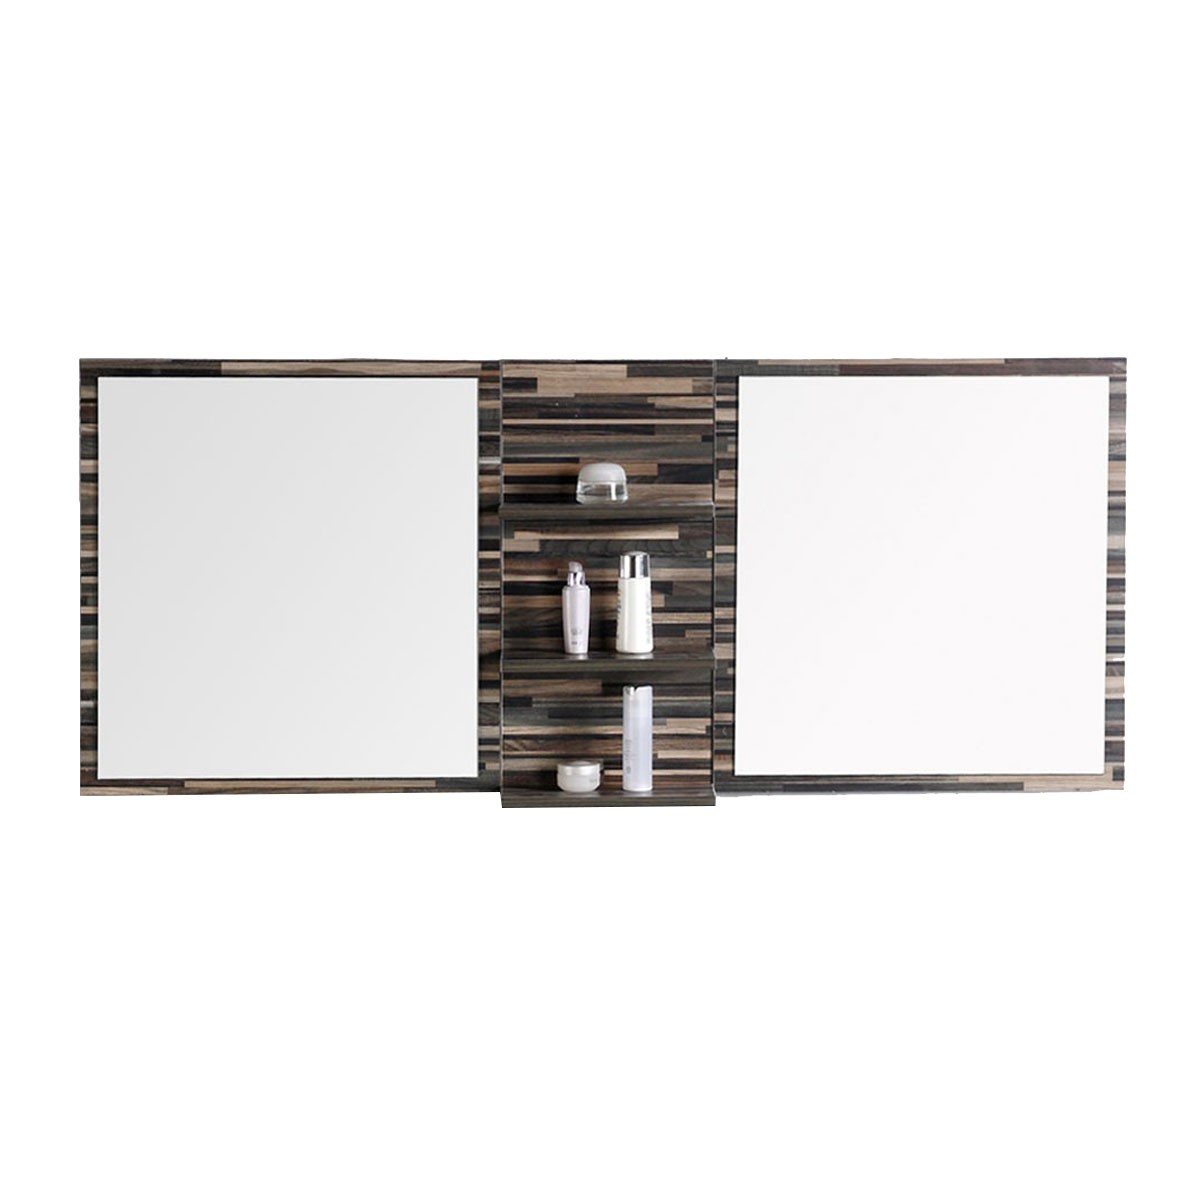 55 x 24 In. Bathroom Vanity Mirror (VS-8861-M)